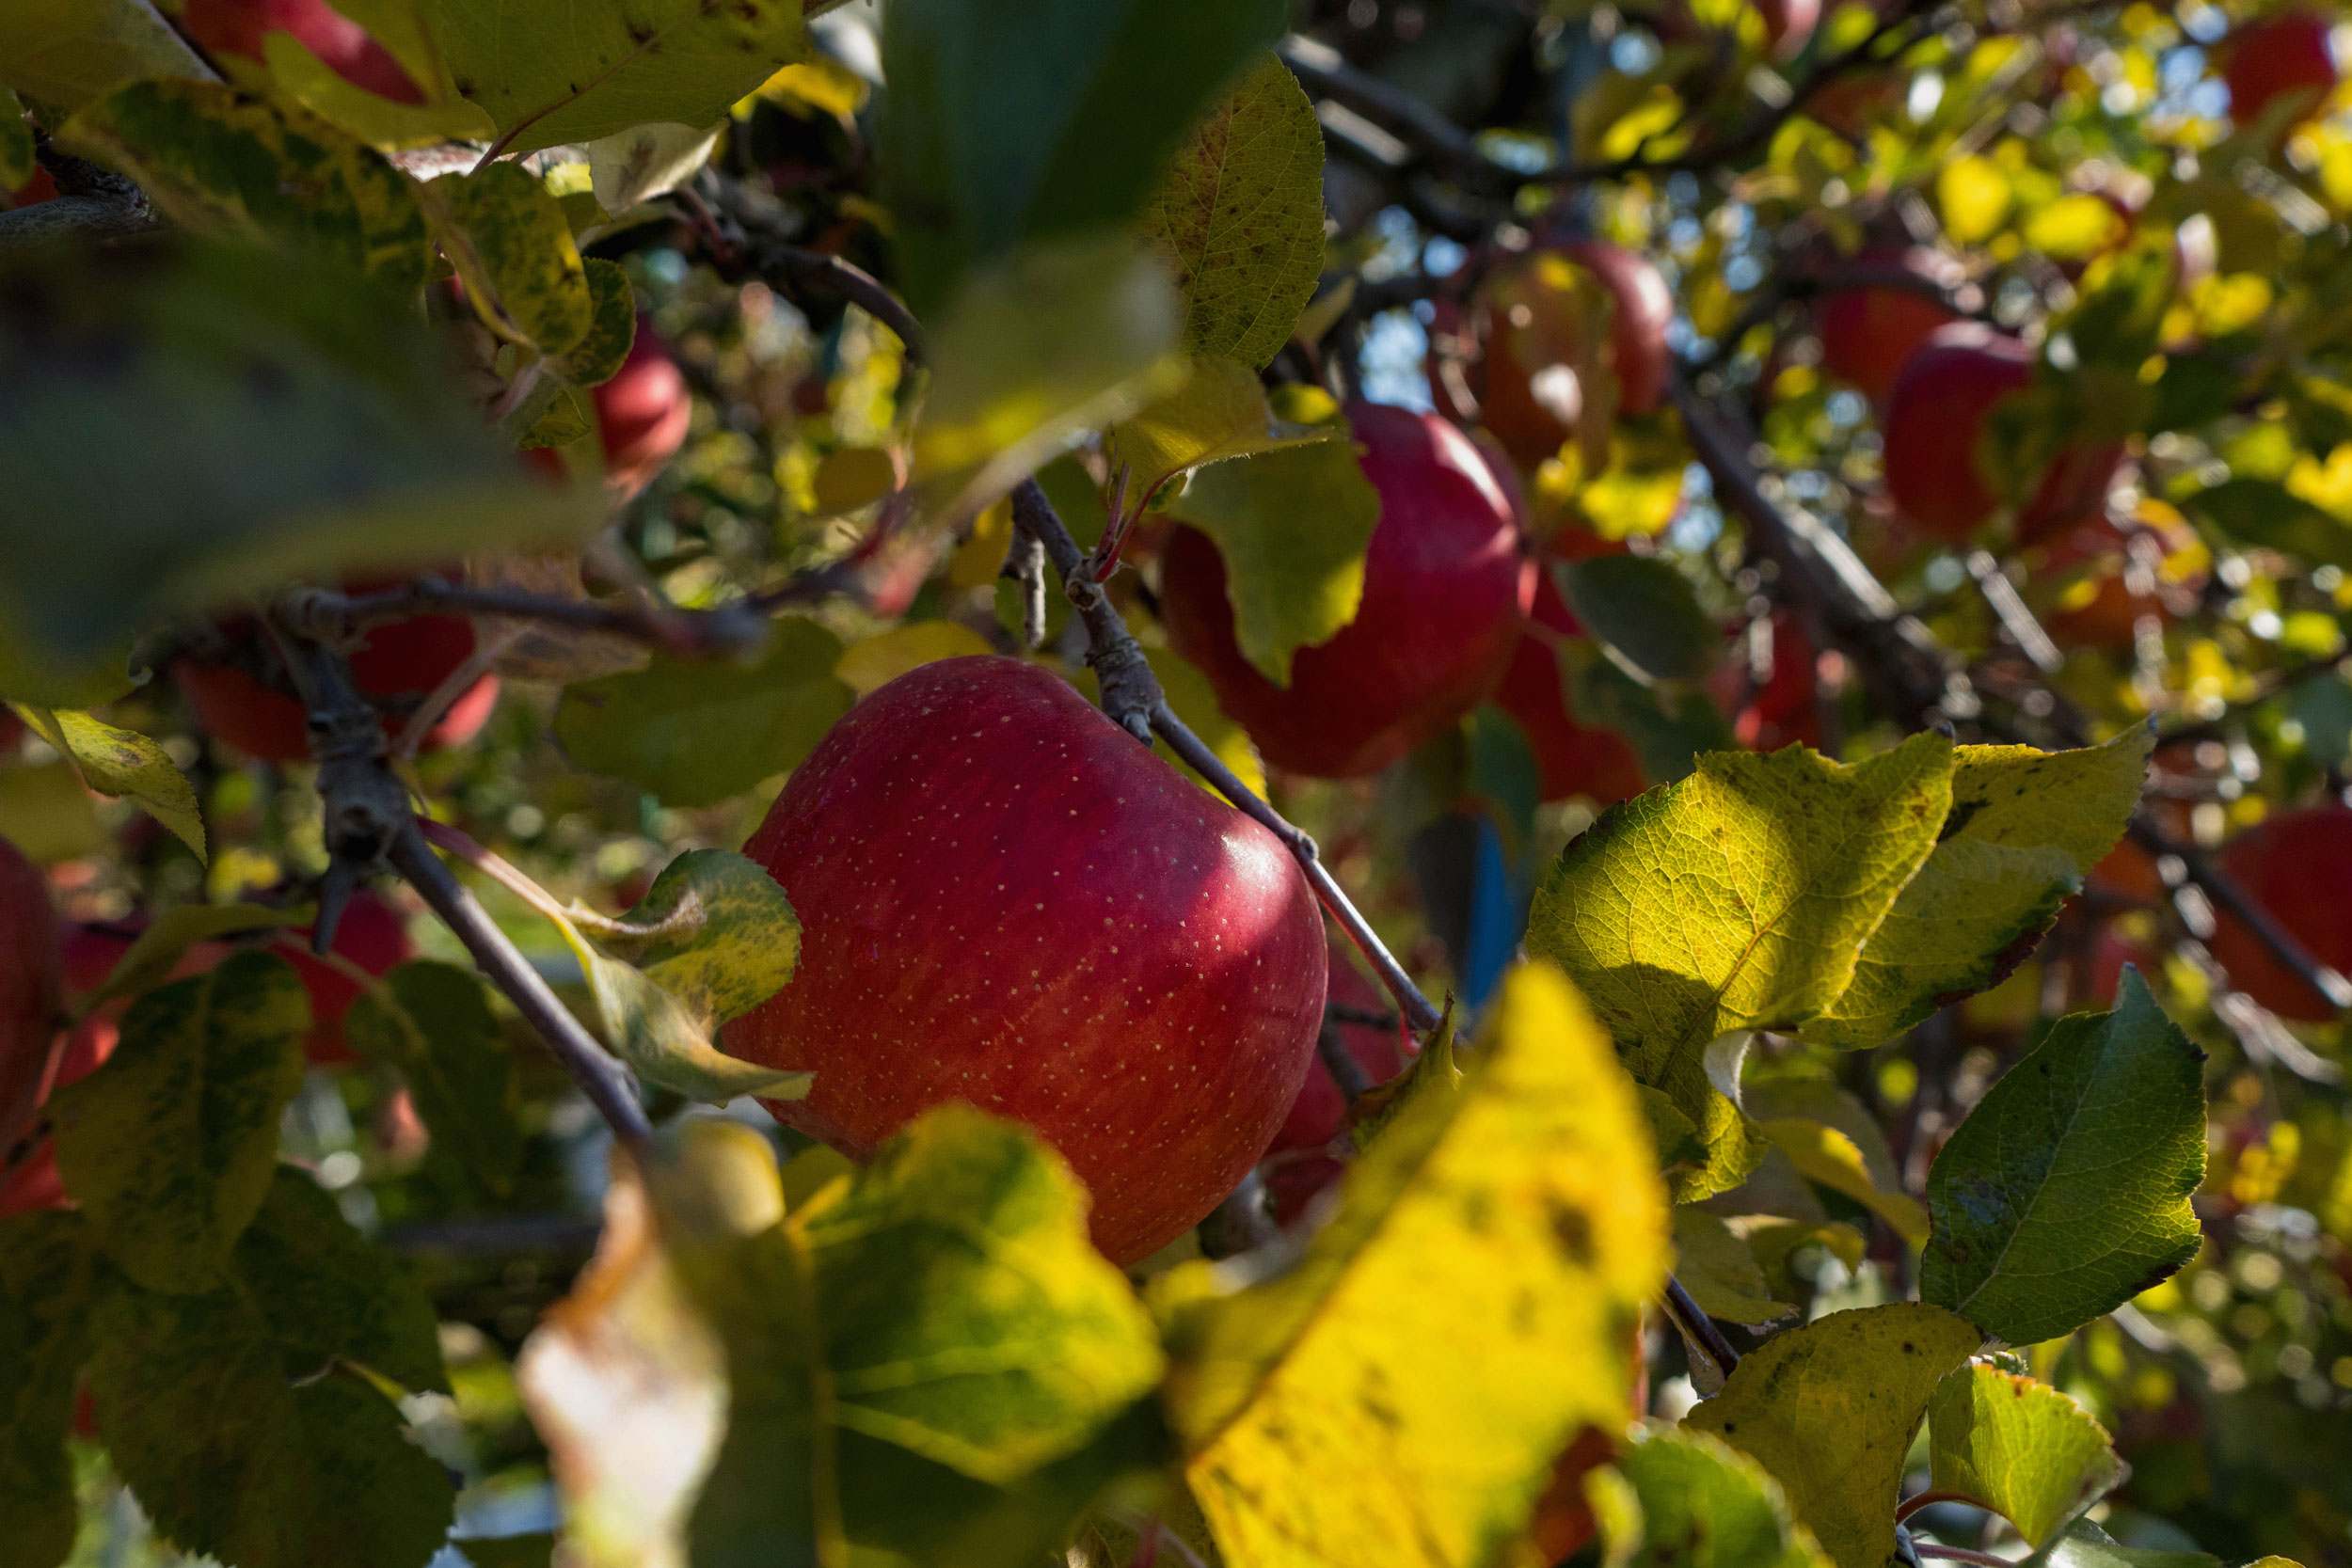 Apples on the tree at Ono Ringo-en